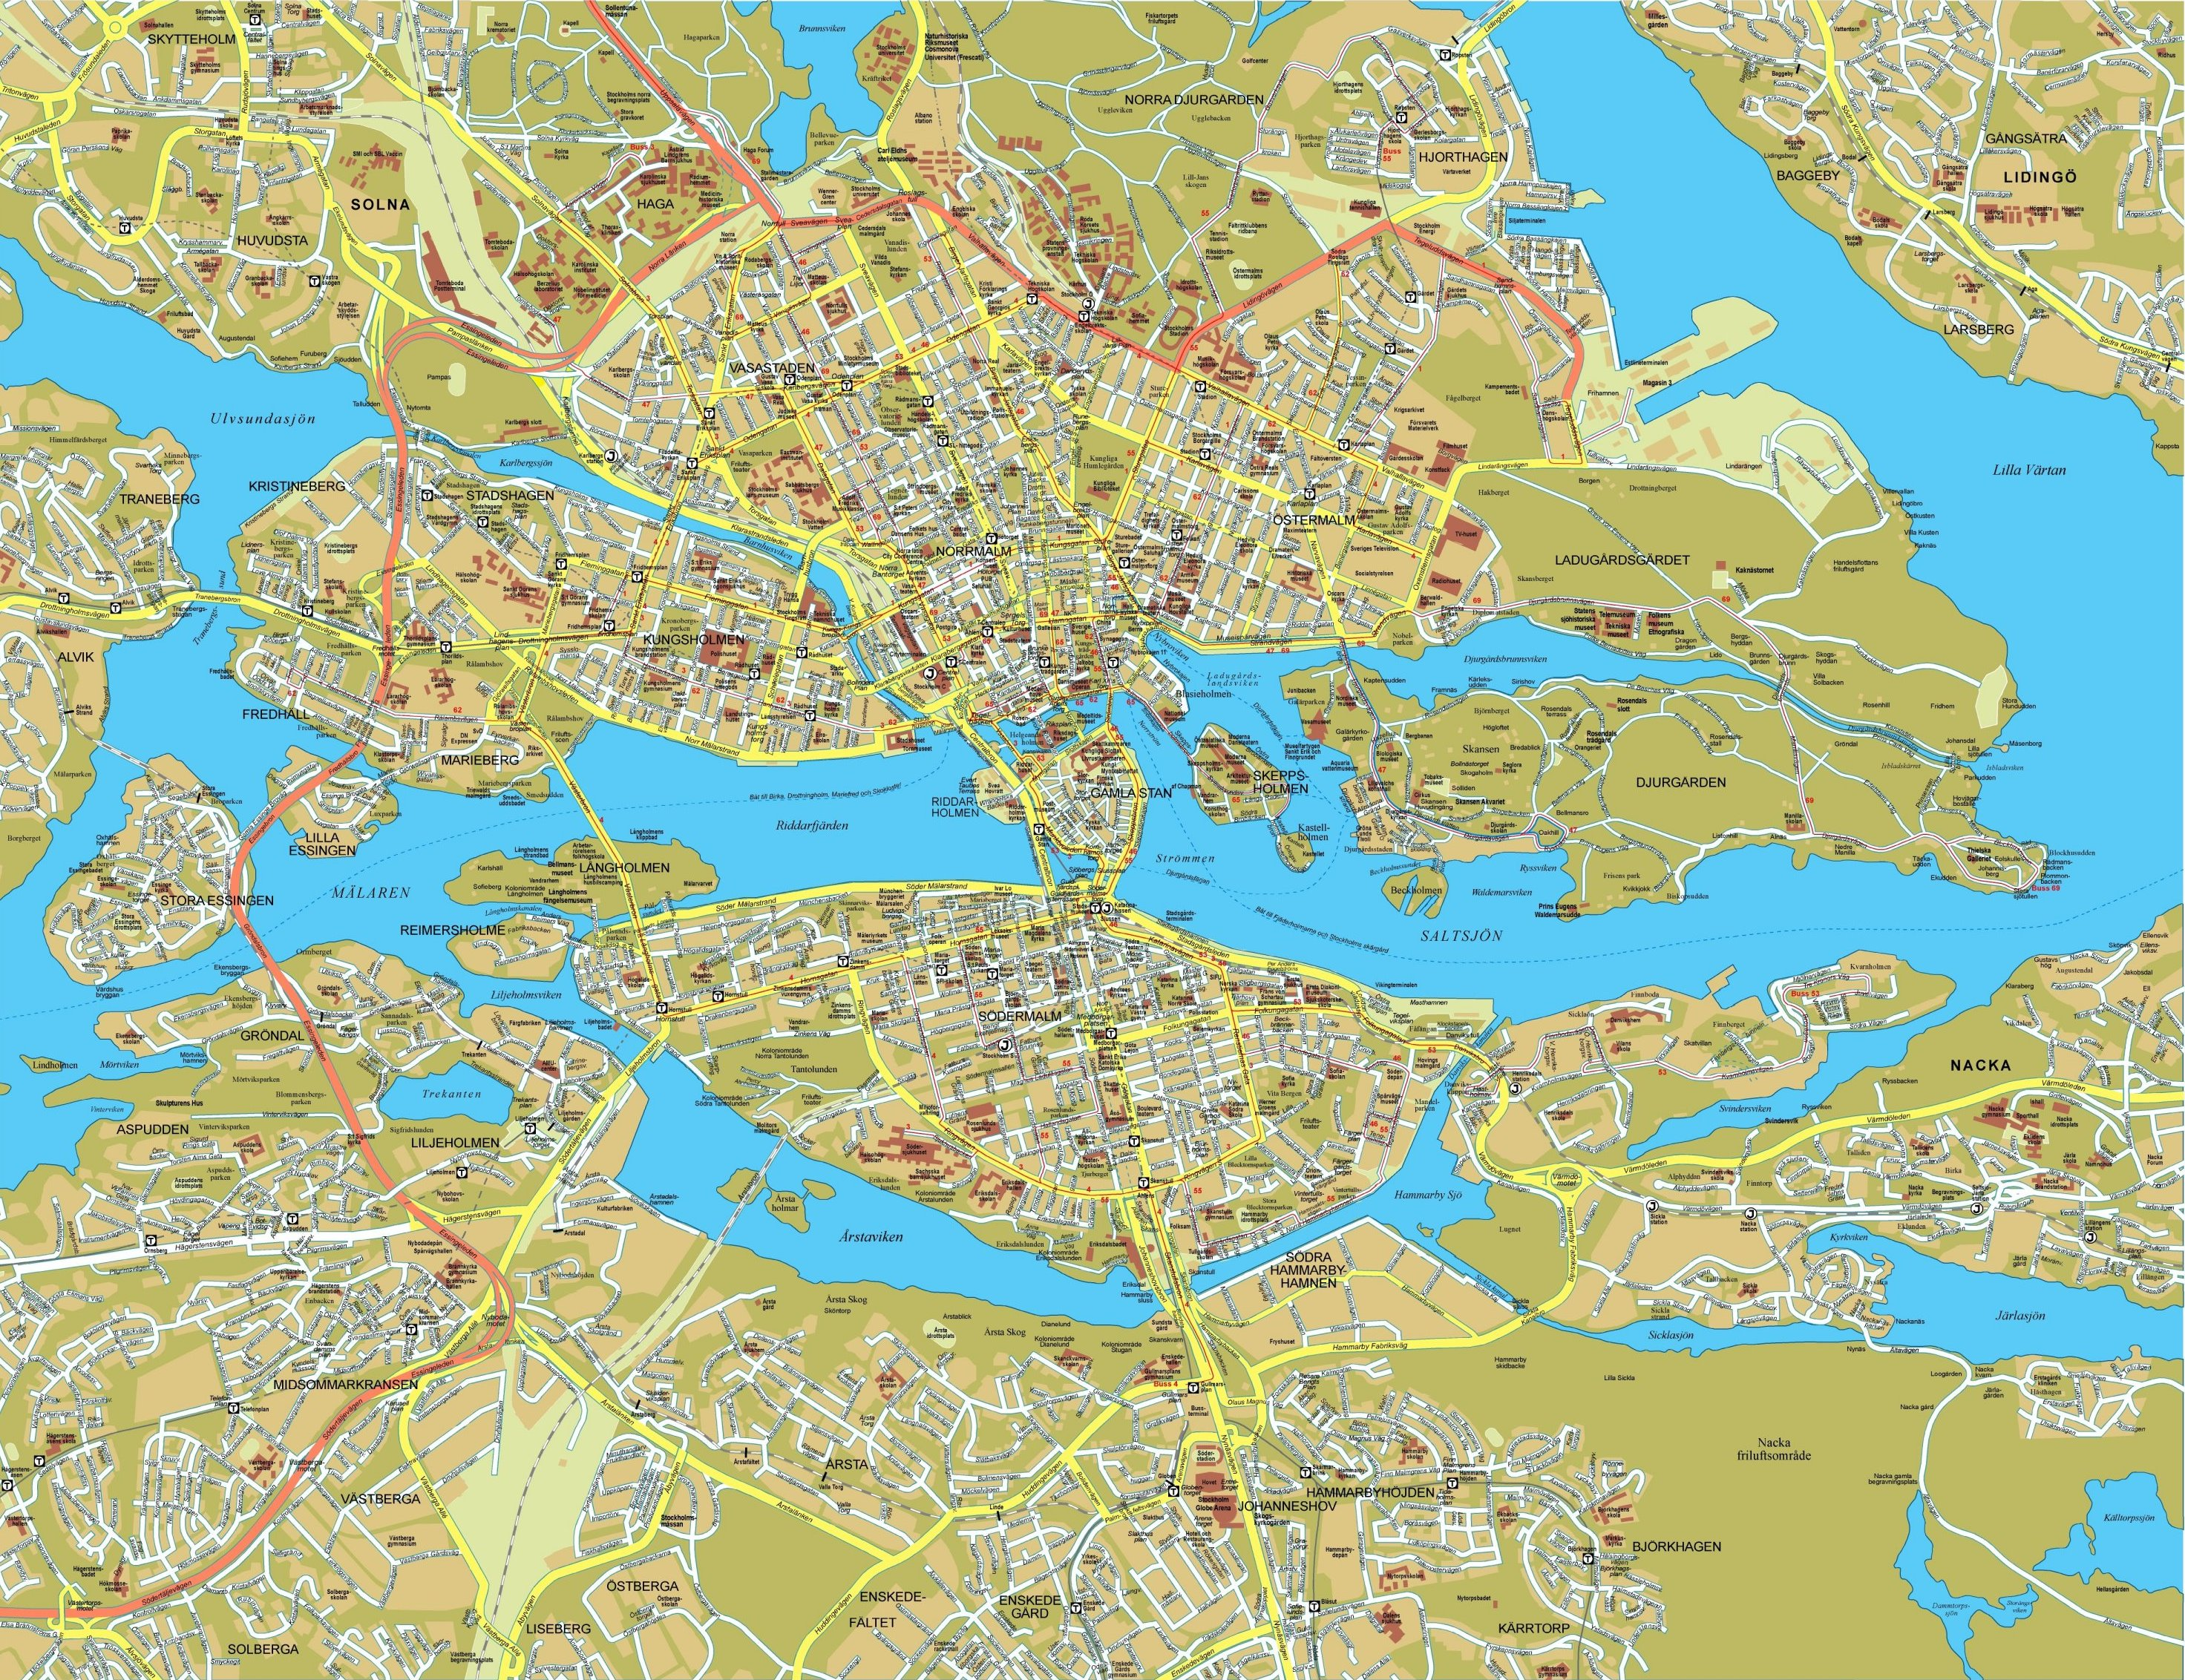 Stockholm Tourist Map holm Sweden mappery – Stockholm Tourist Map